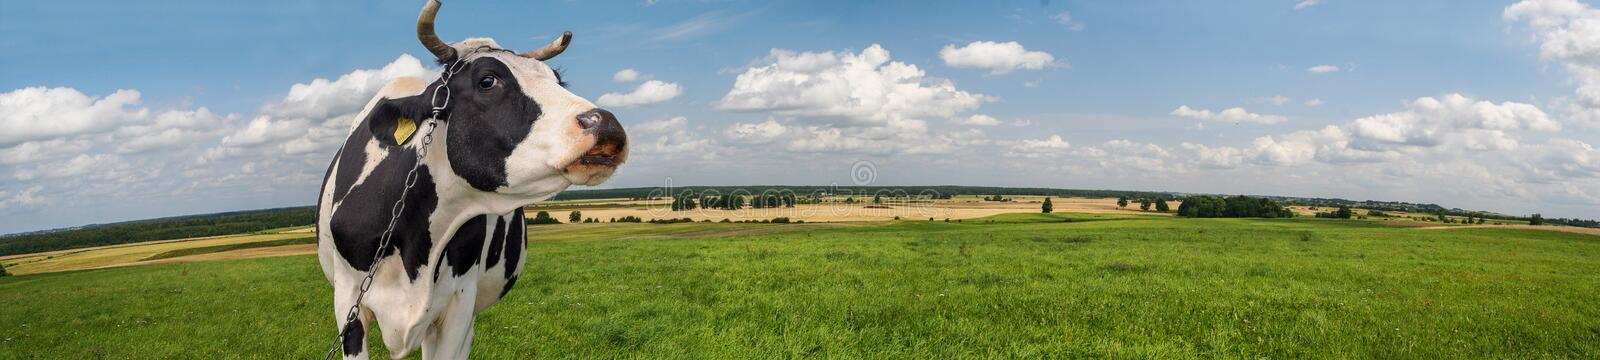 Black and white cow in a rural landscape stock photography